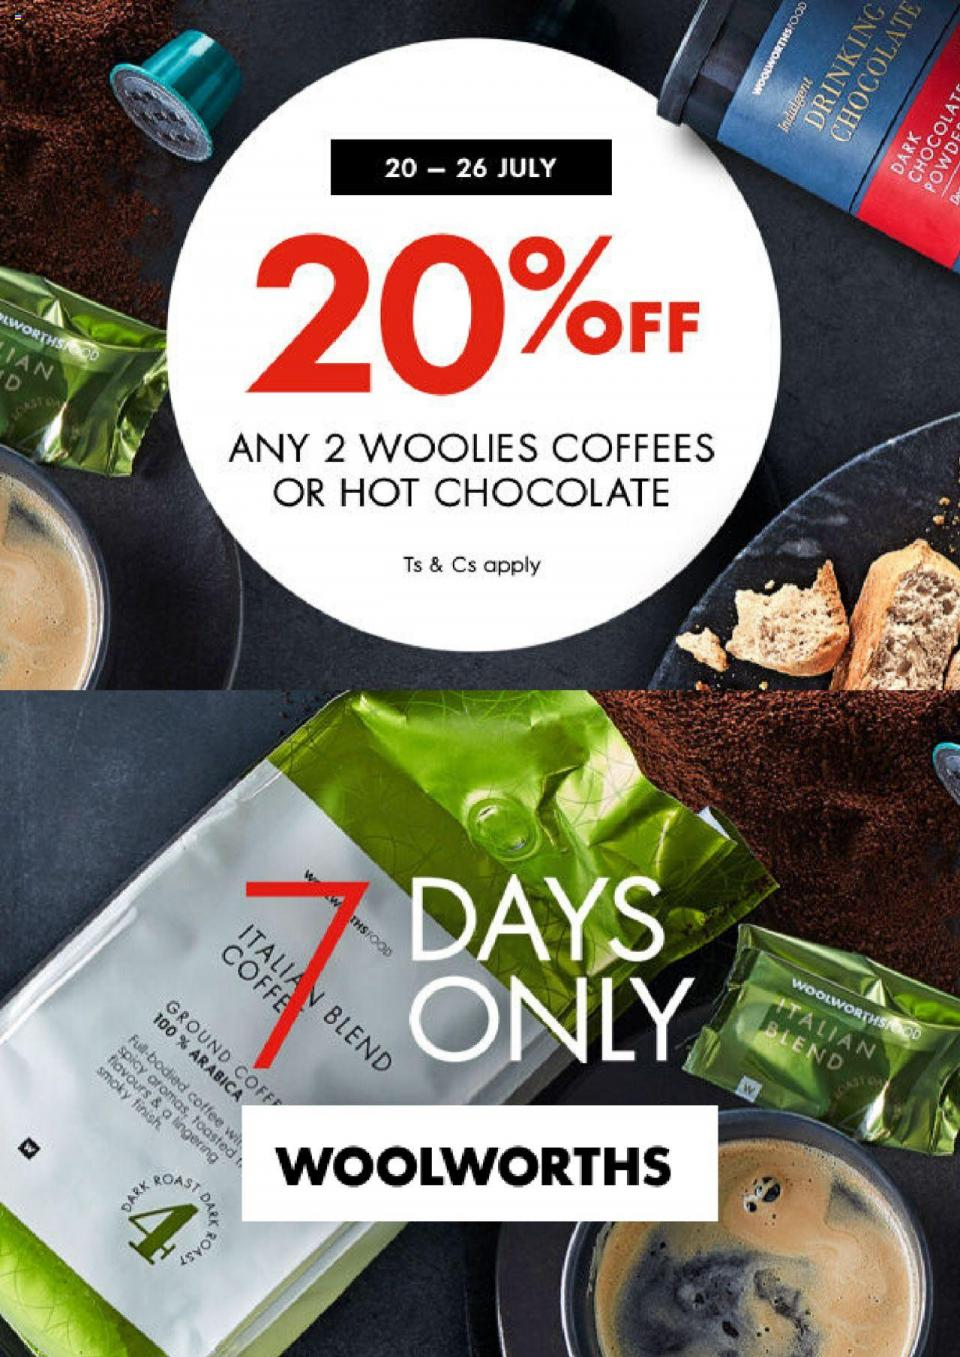 woolworths specials 20 off 20 july 2020